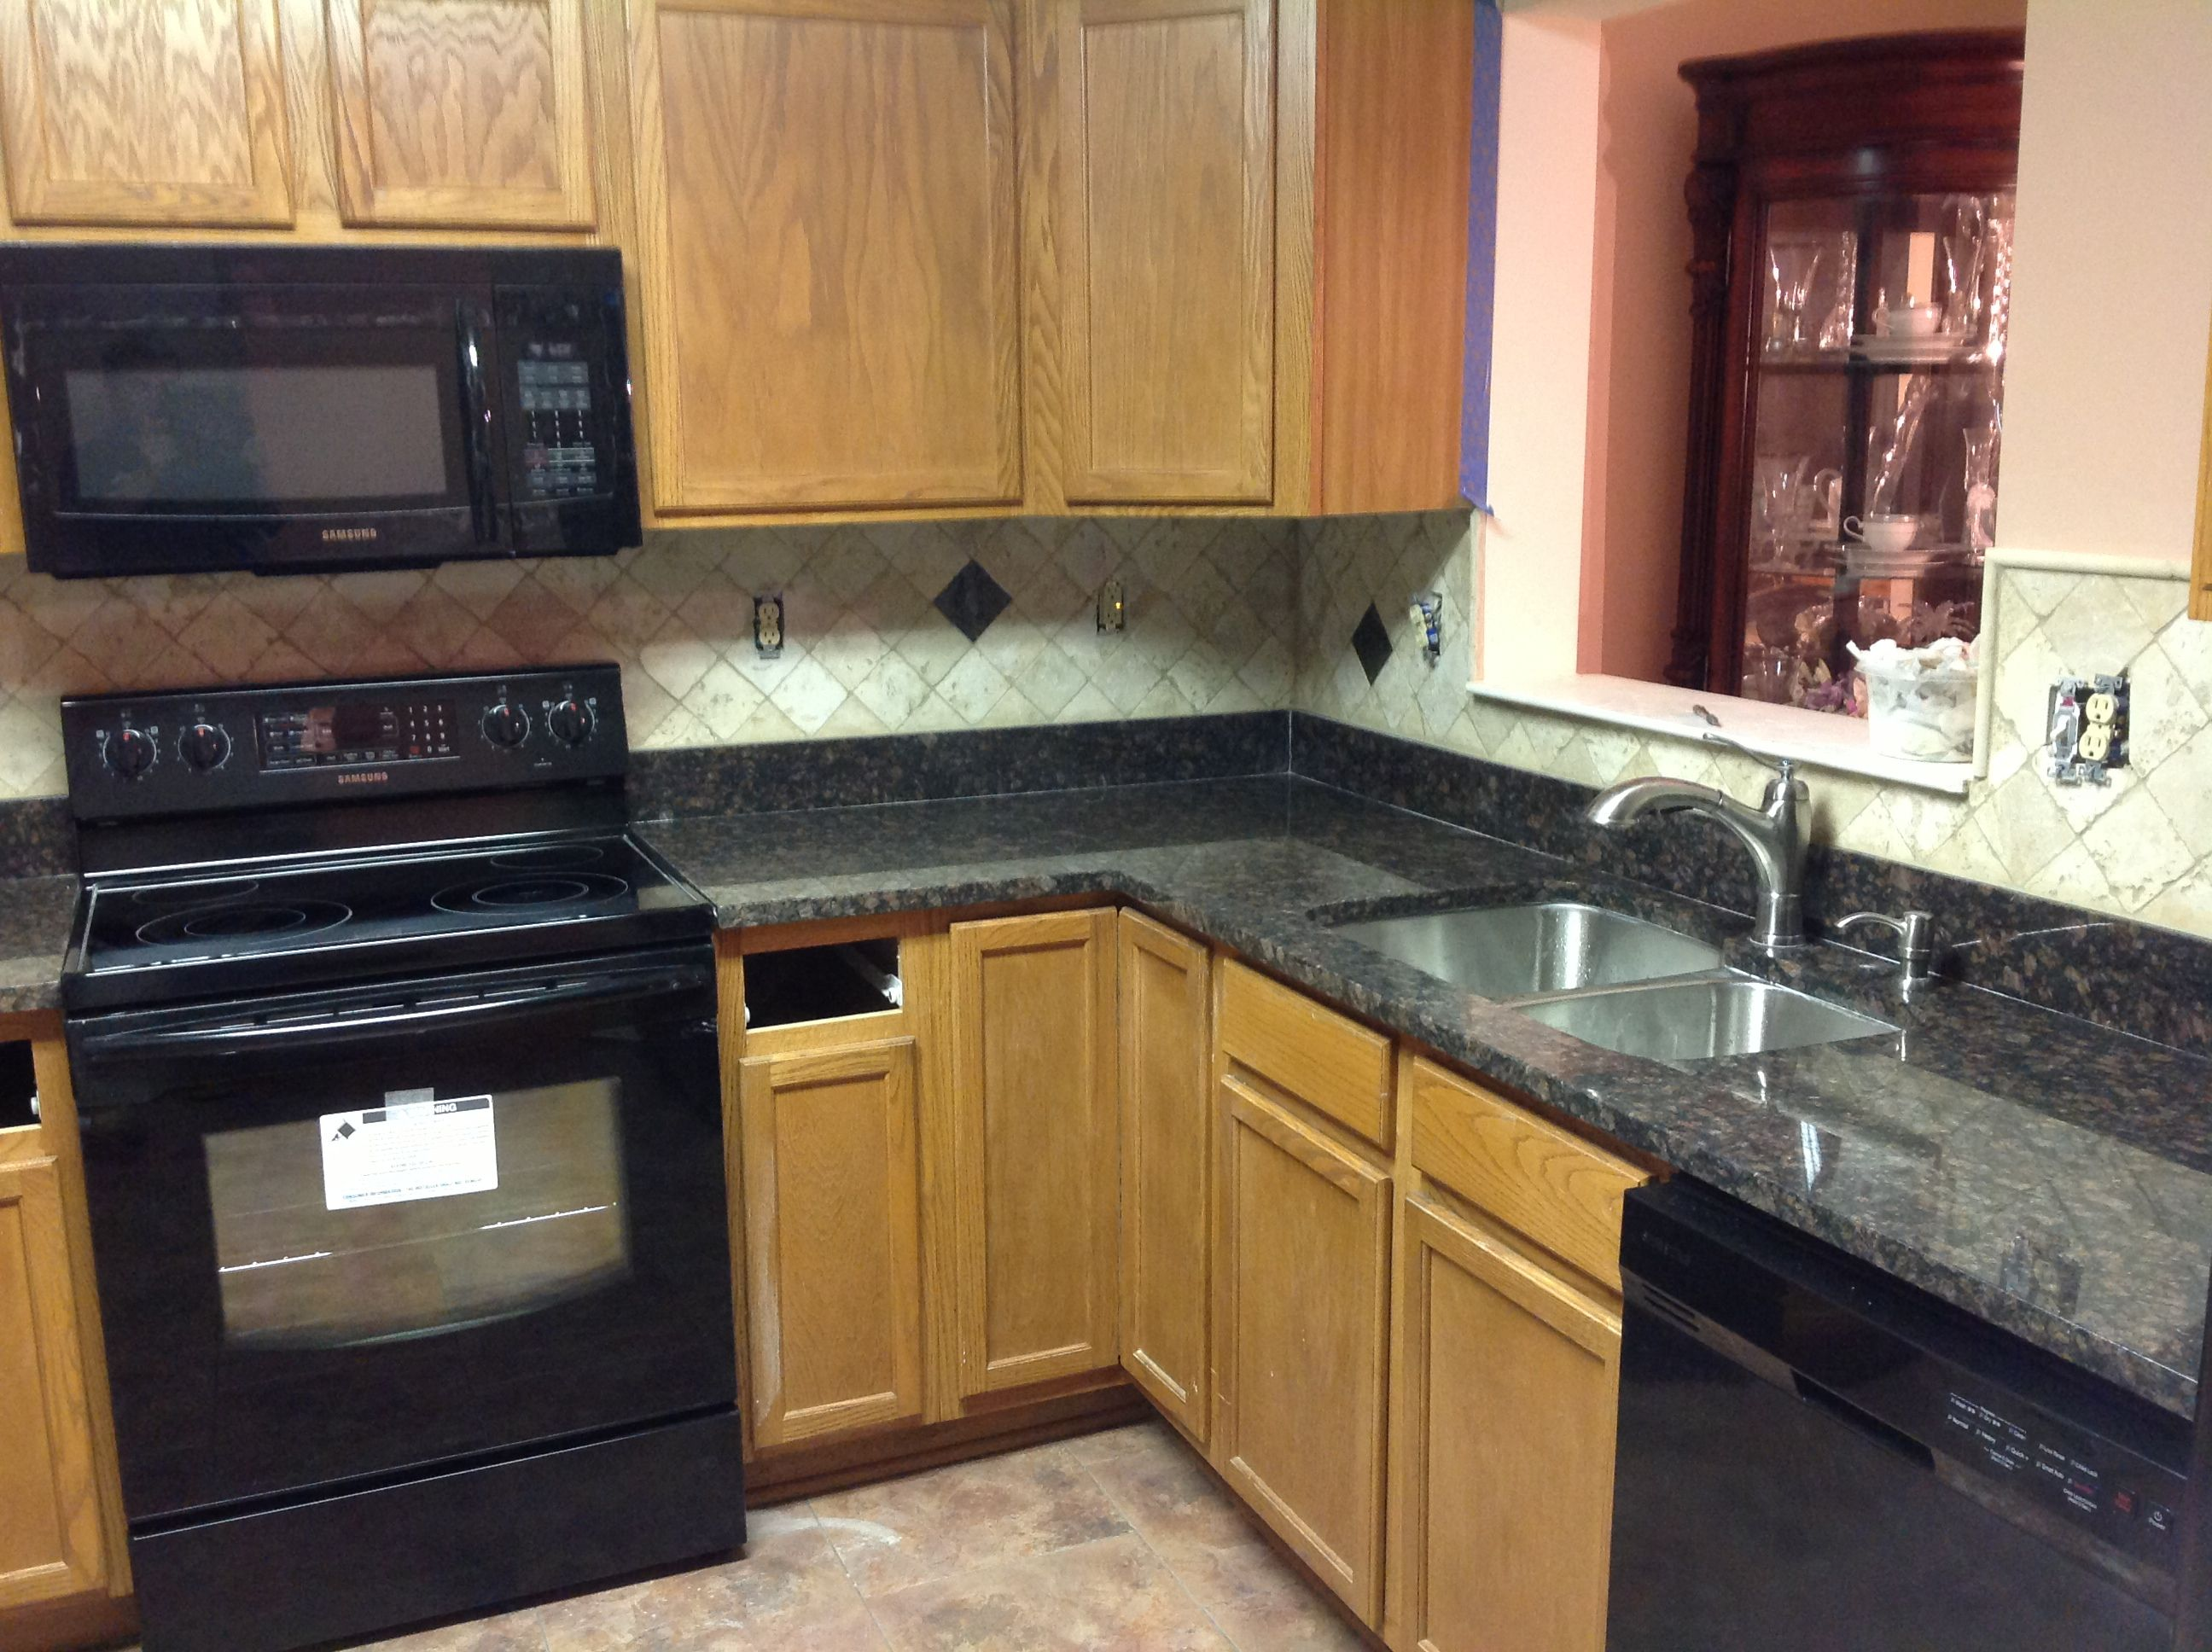 granite kitchen countertops Donna S Tan Brown Granite Kitchen